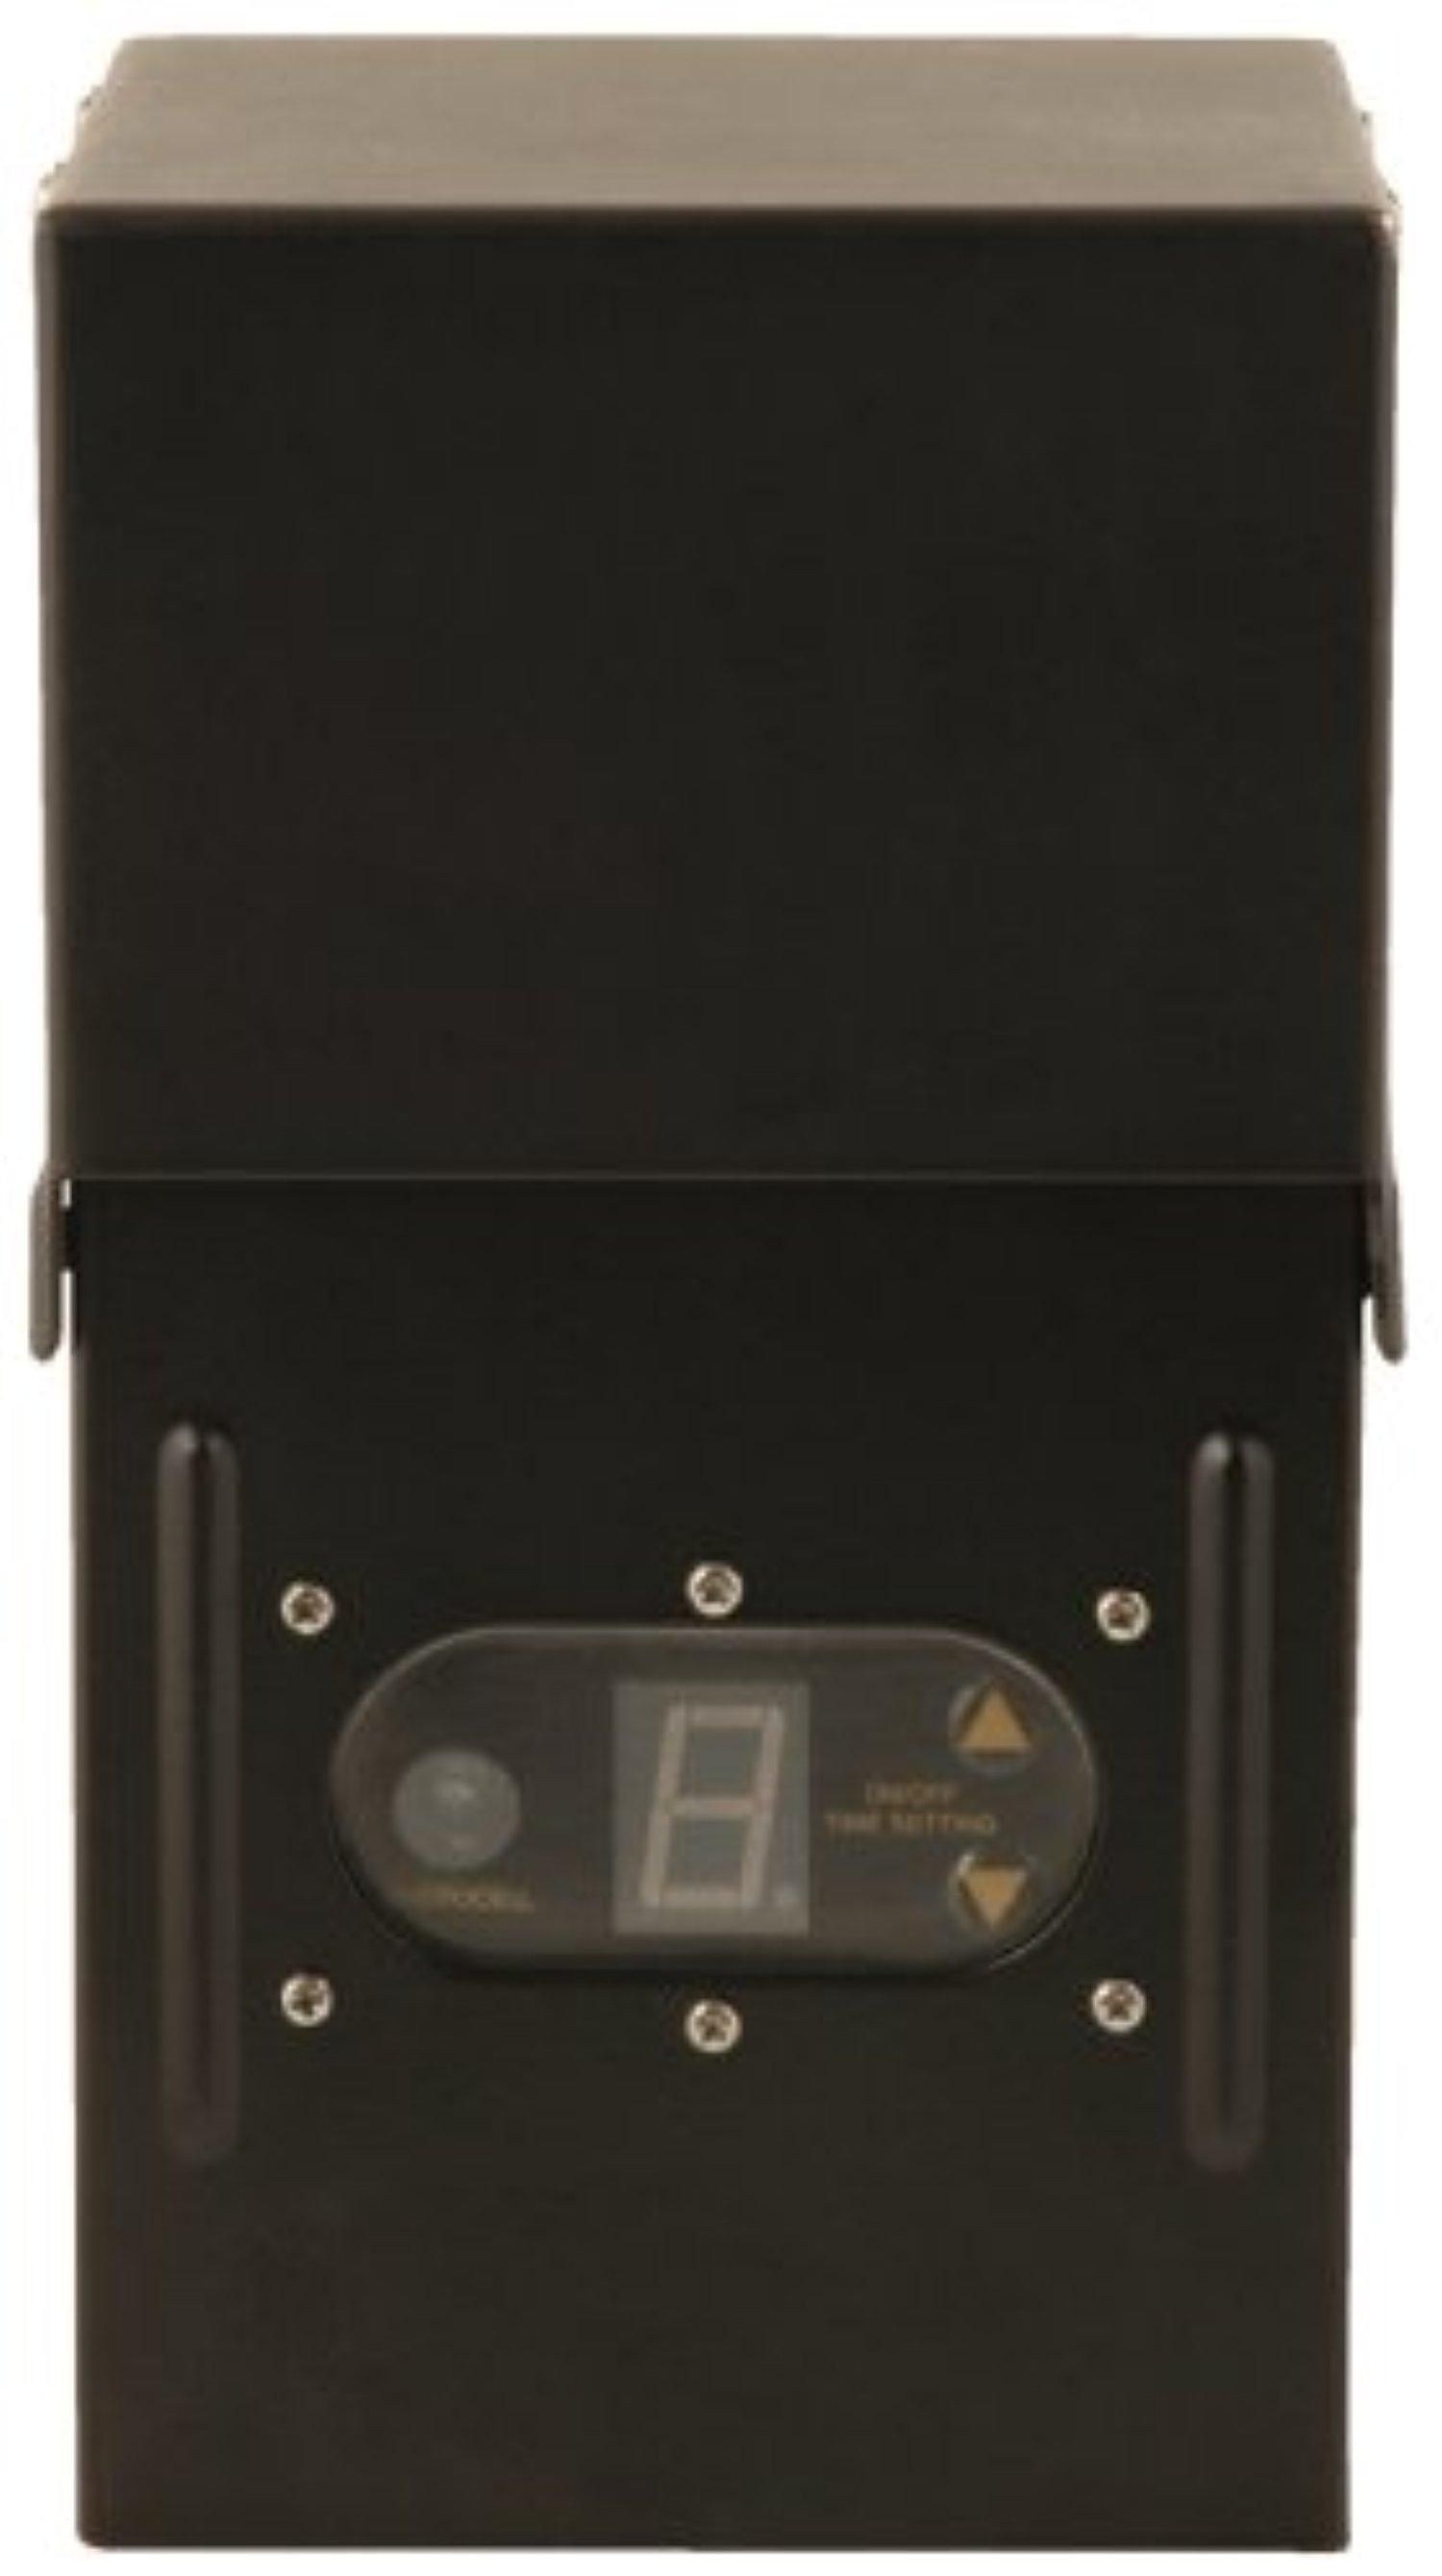 Moonrays 95433 300 Watt Pack With Sensor And Weather Shield For Low Voltage Landscape Lighting Brought To You By Avarsha